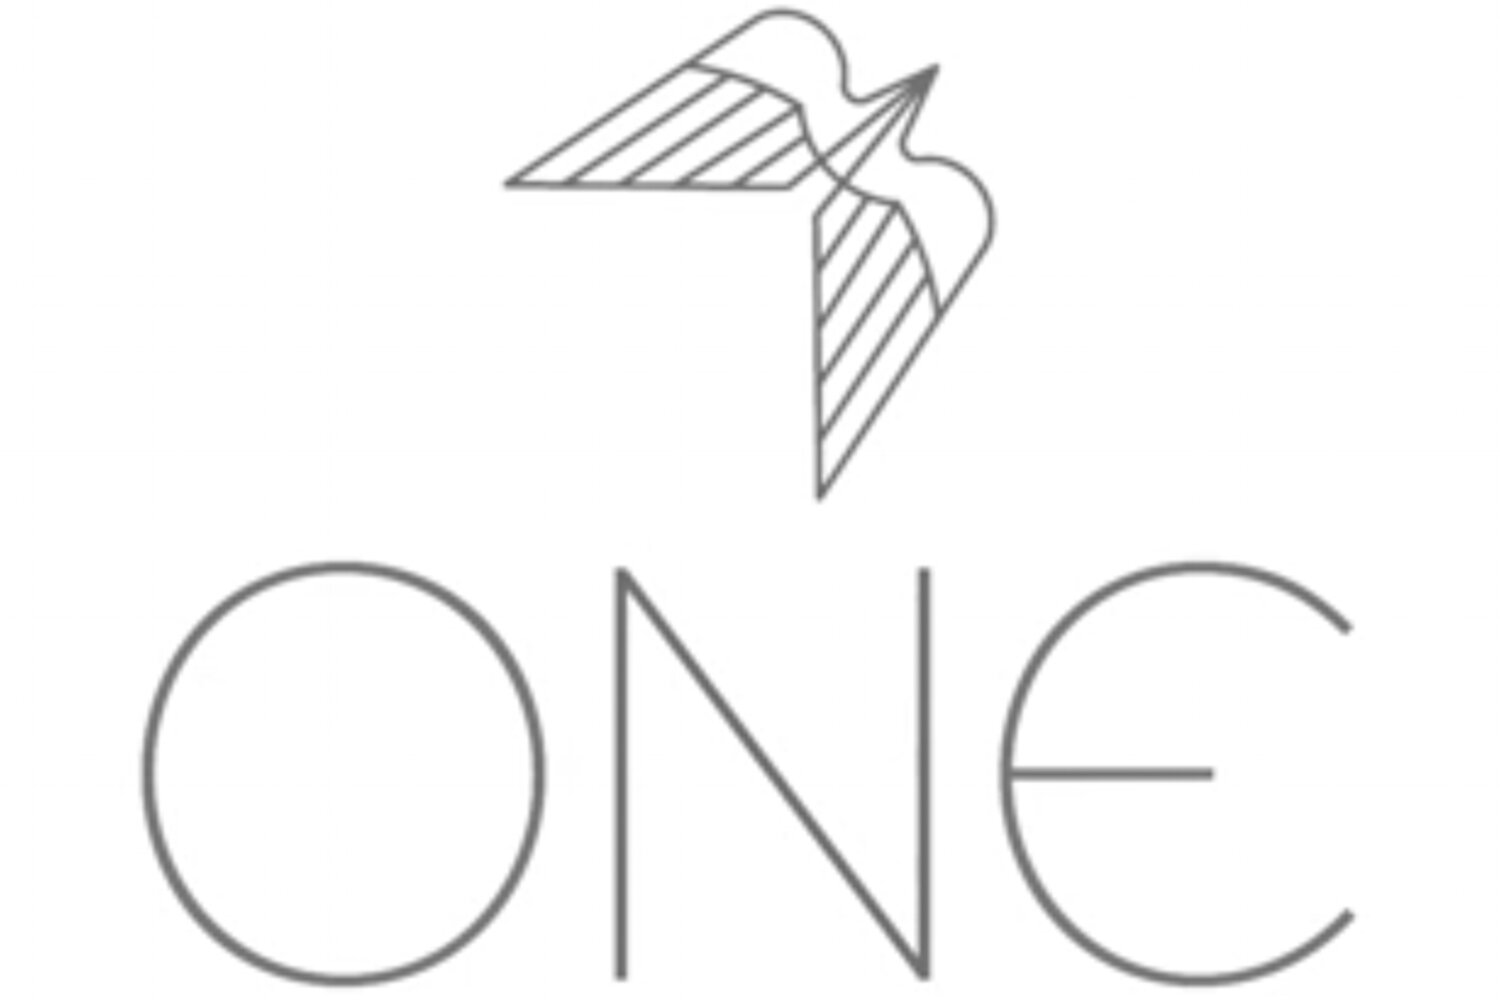 About — ONE